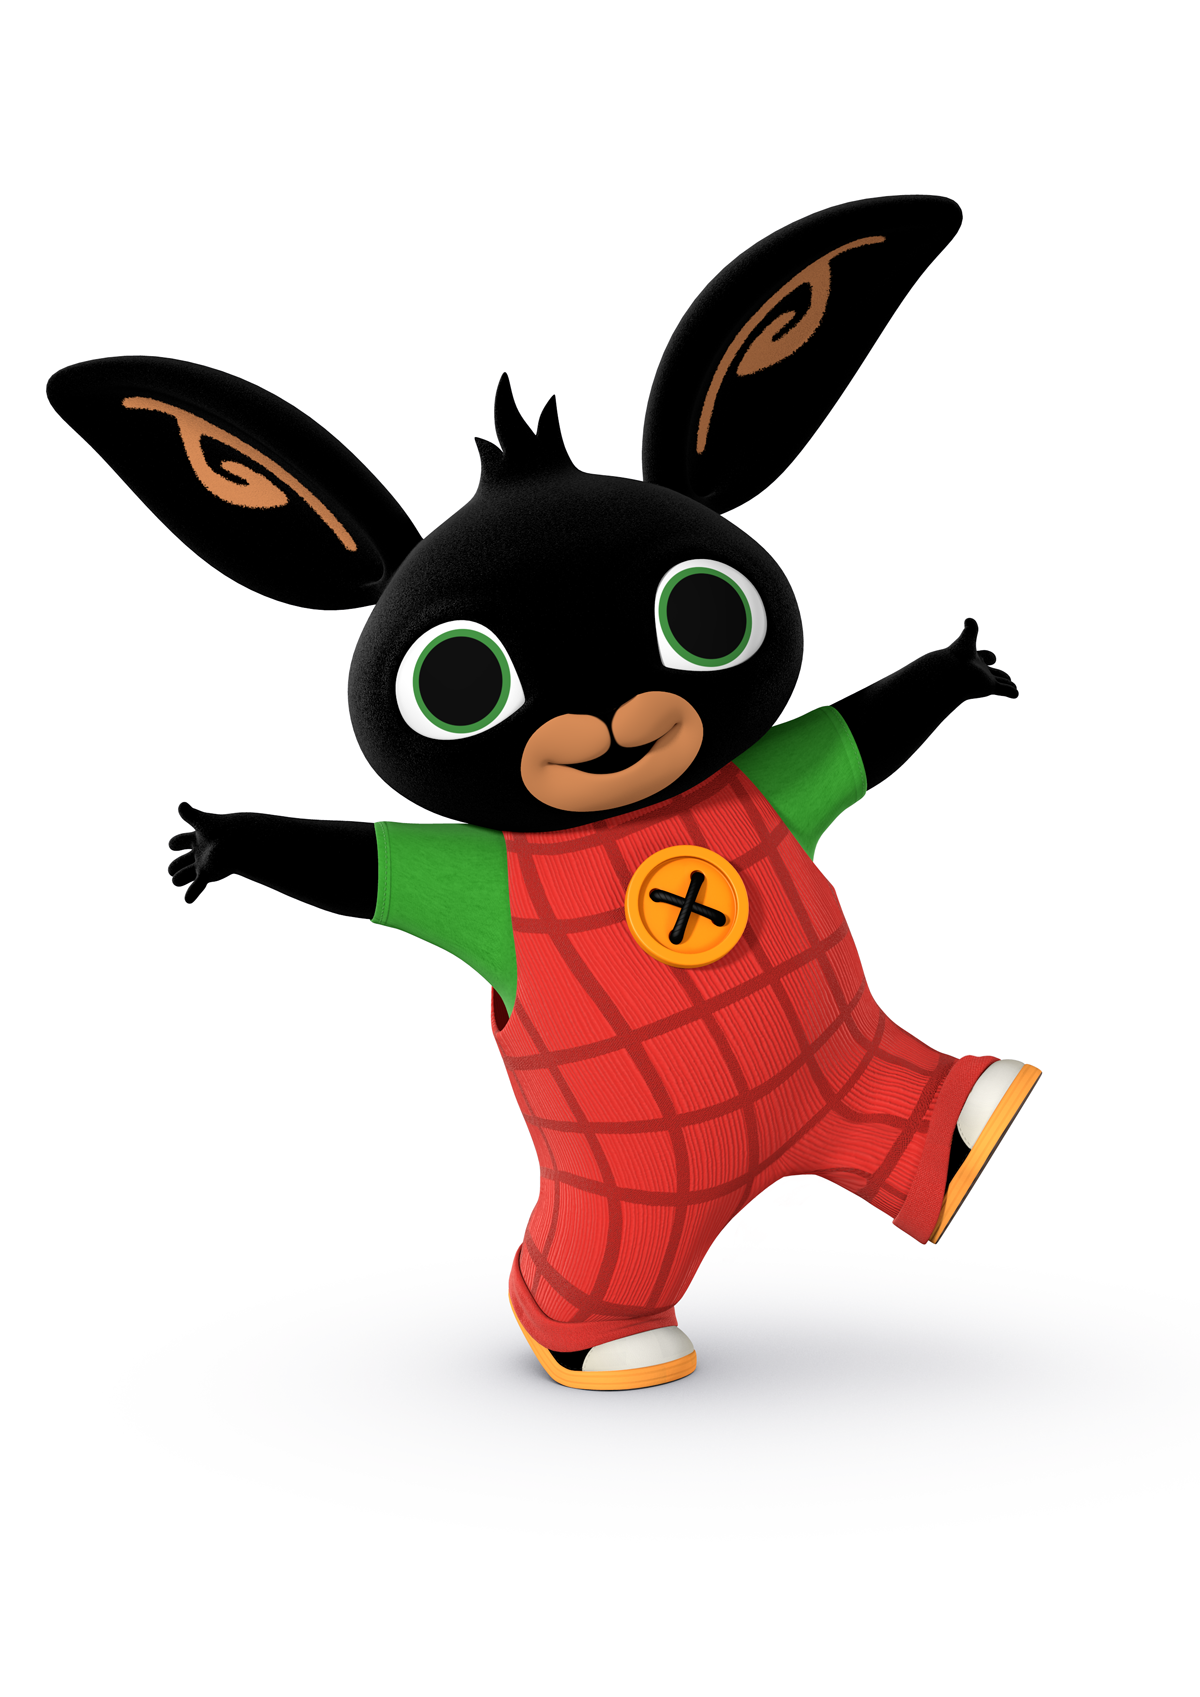 Bing clipart character, Bing character Transparent FREE for.